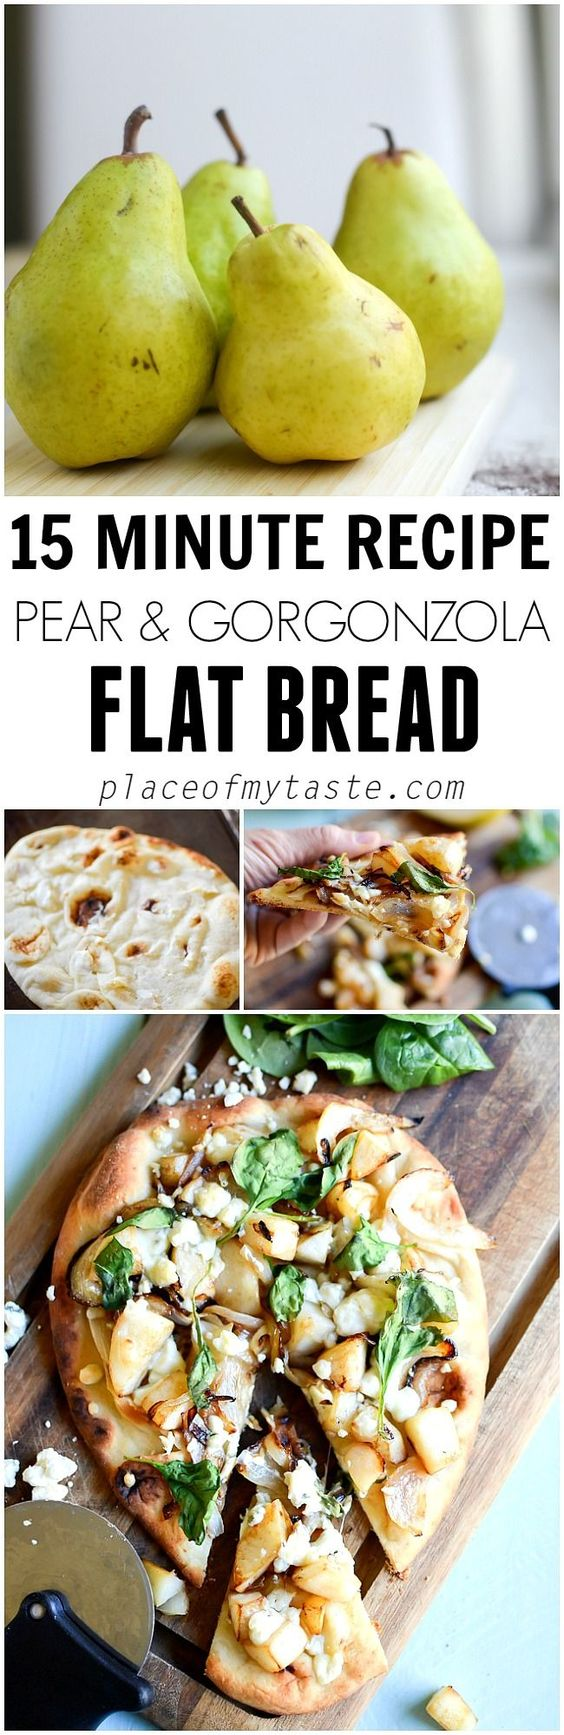 This flat bread has the most amazing flavors and it's done in 15 minutes!!